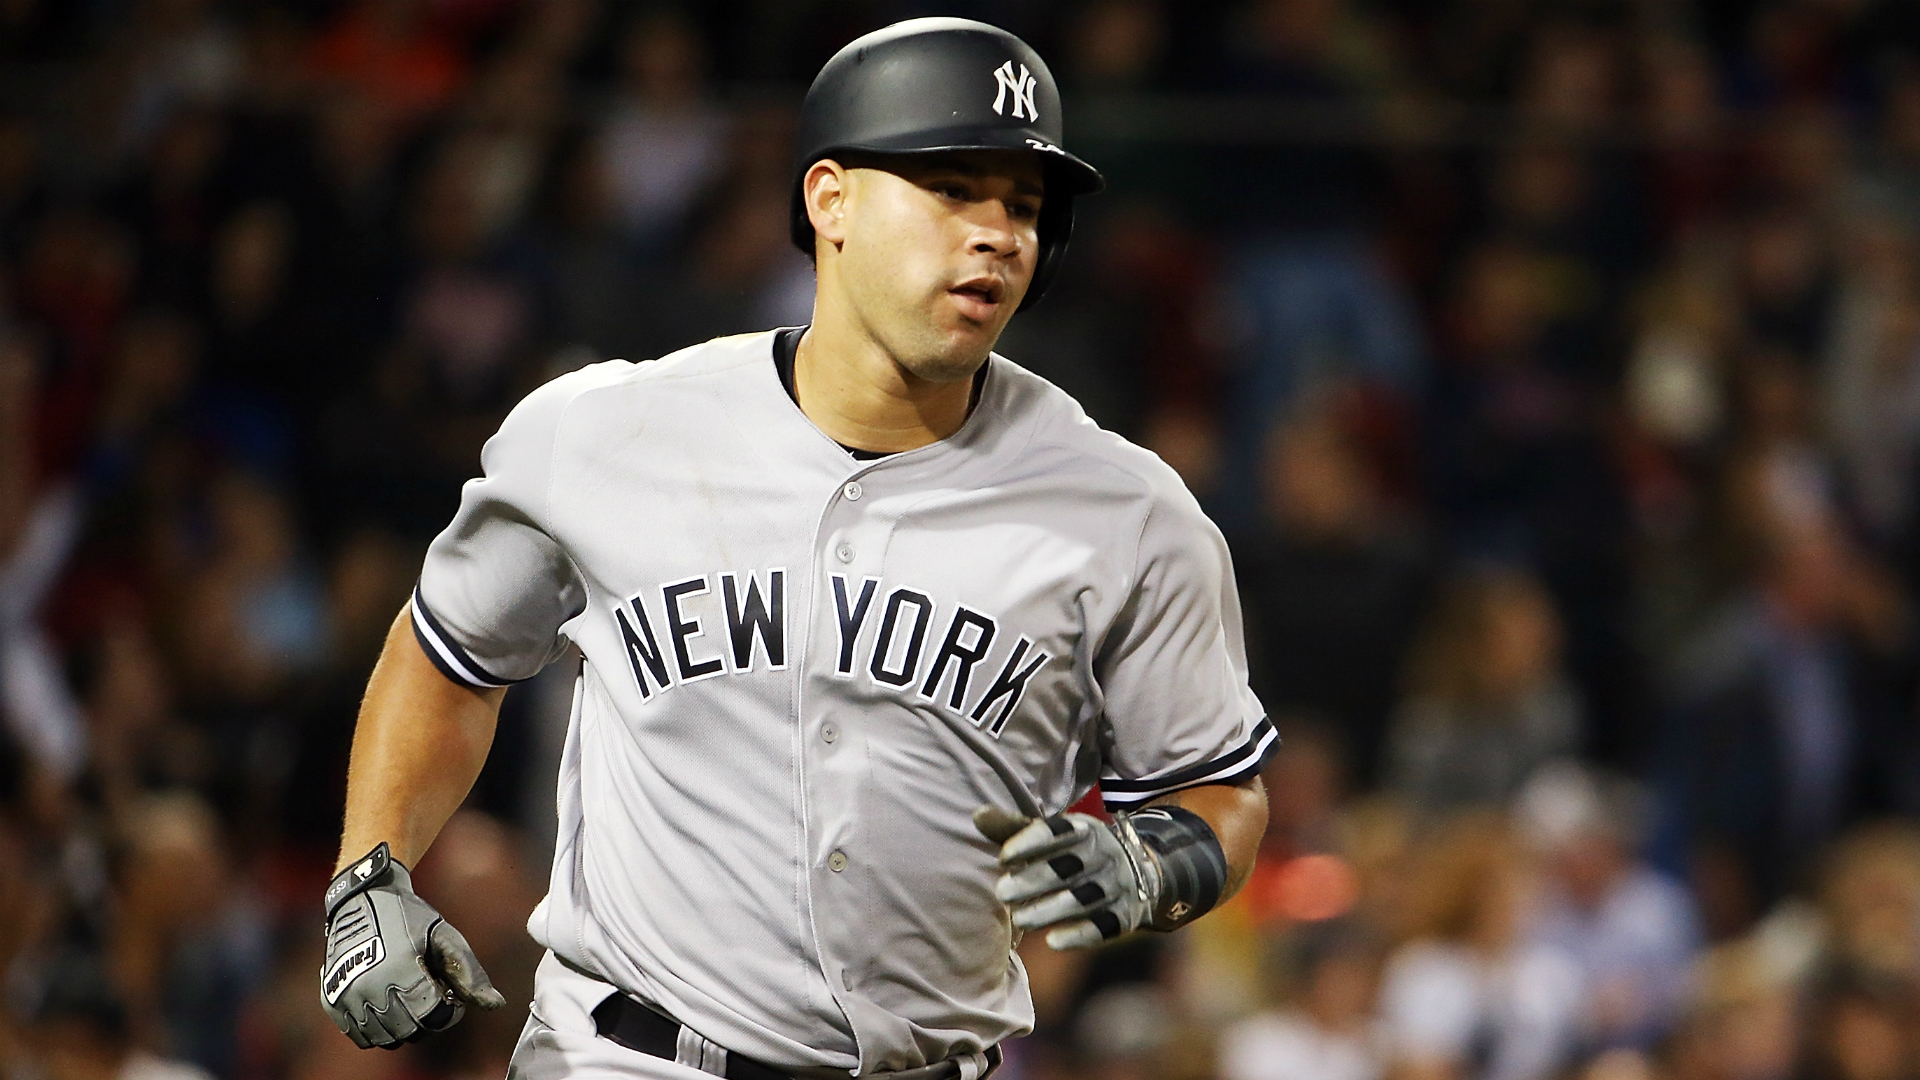 What can the Yankees expect from Gary Sanchez and Edwin Encarnacion upon their return?